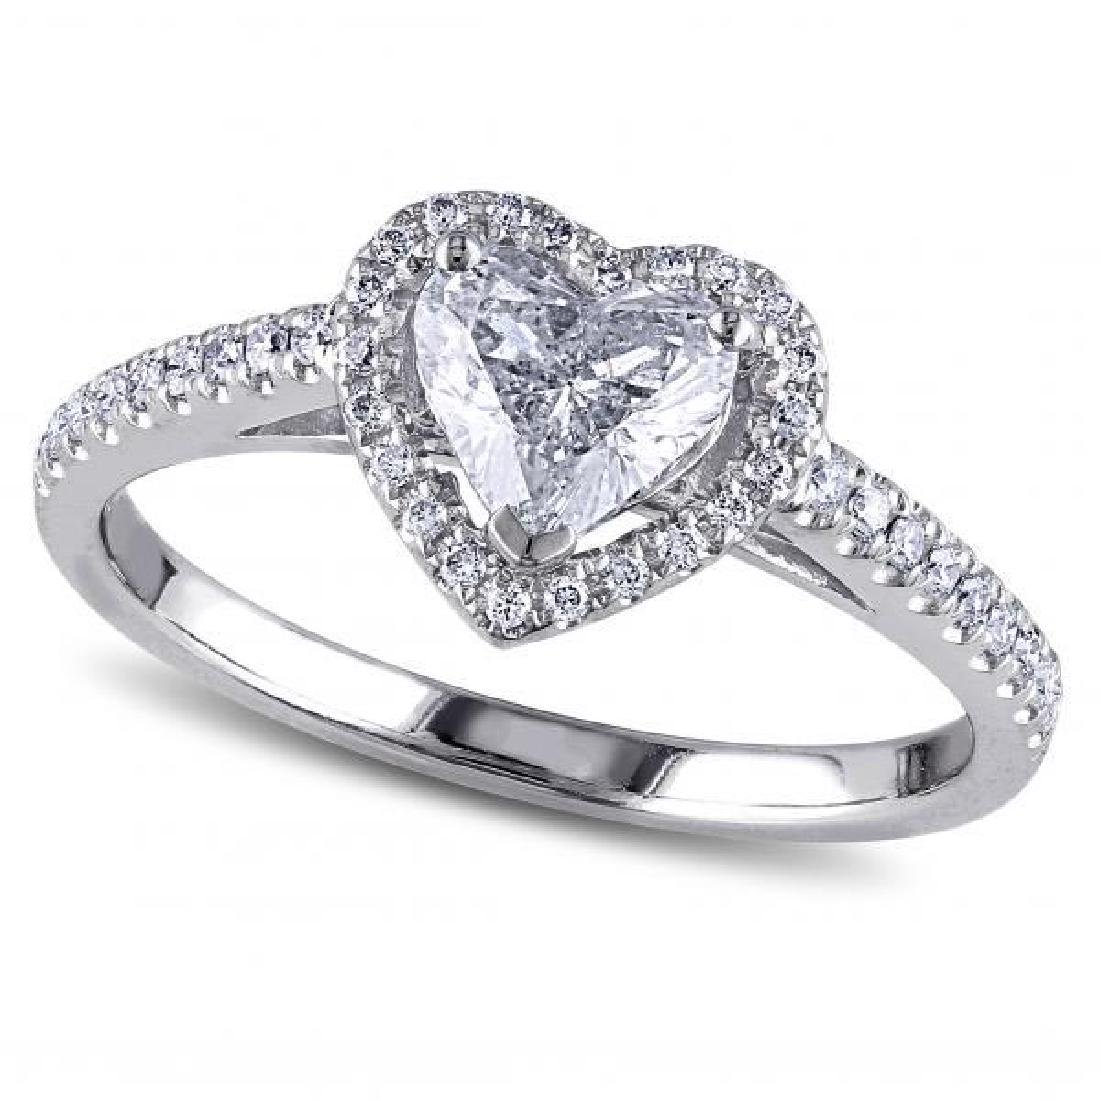 Heart Shaped Diamond Halo Engagement Ring in 14k White